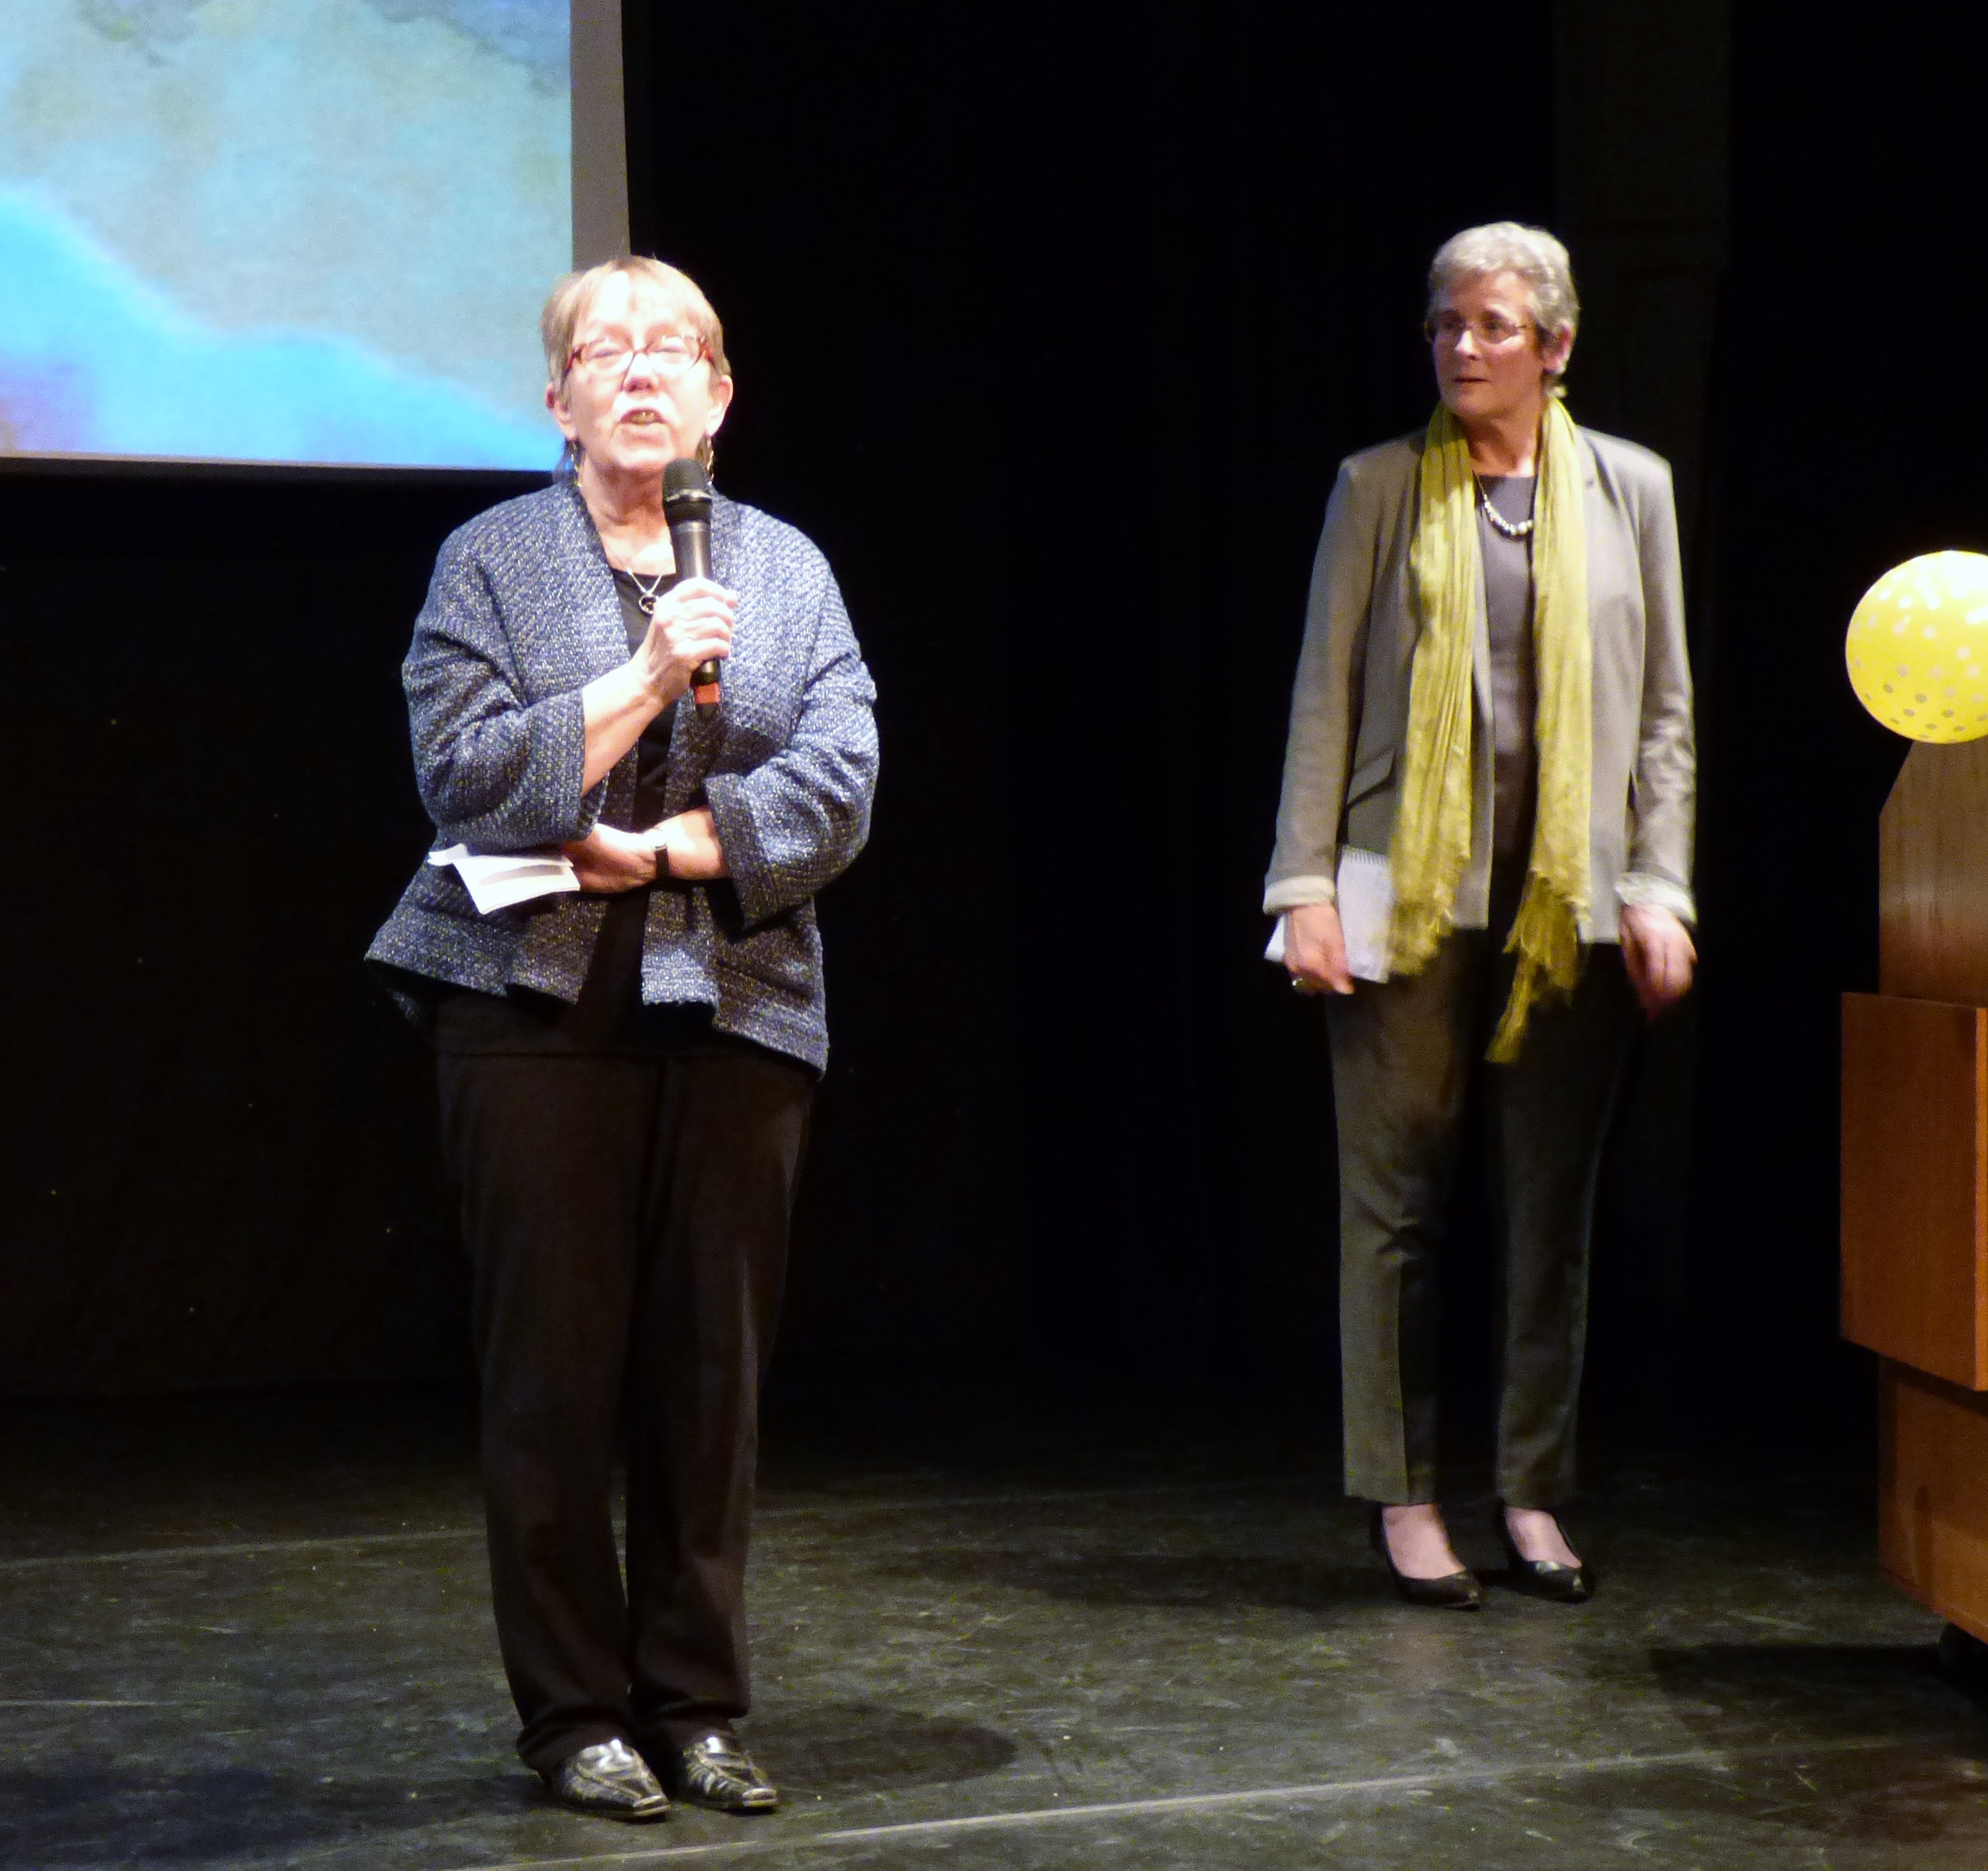 Marie and Kim will introduce Kaffe Fassett and Brandon Mably to the audience at Kaffe Fassett Lecture, Capstone Theatre, Dec 2016